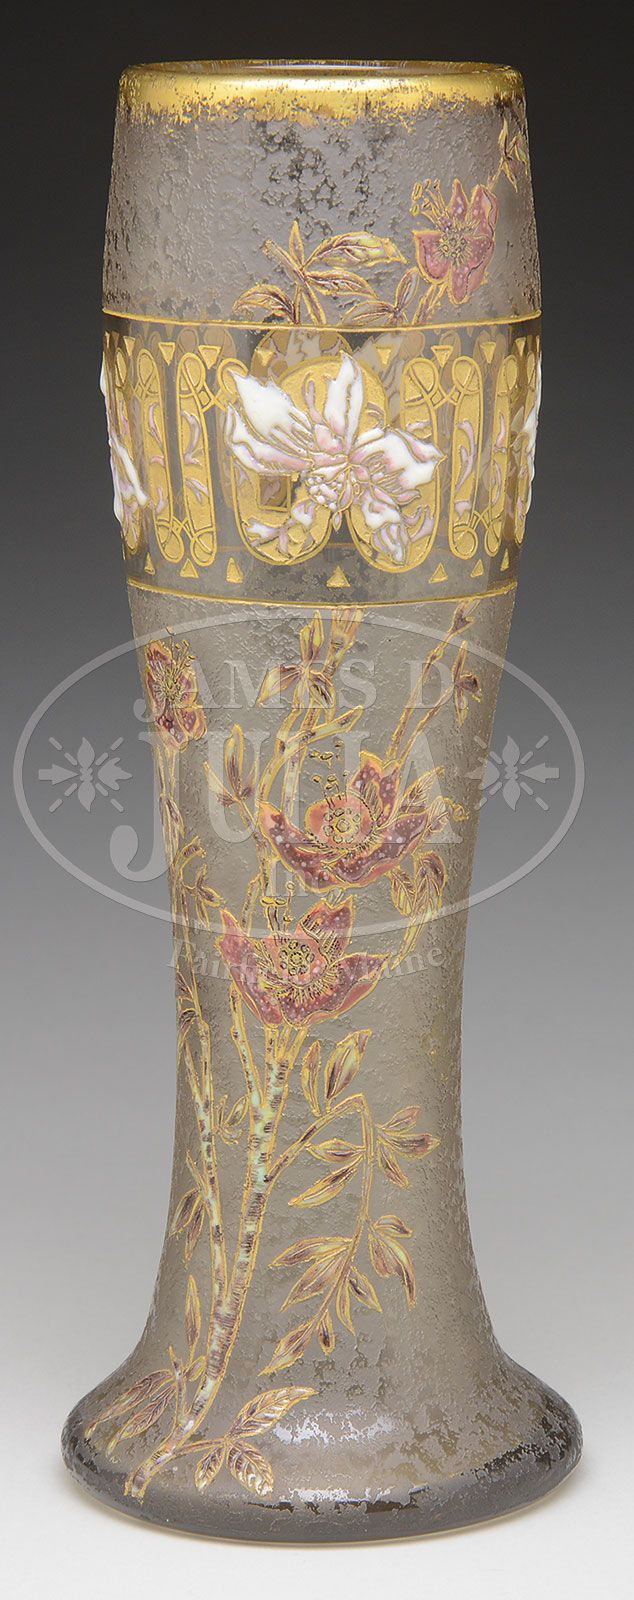 "DAUM NANCY CAMEO AND ENAMELED VASE. Early Daum vase is decorated with a sprig of foliage rising from the foot having light green and brown branches leading to deep burgundy and pink blossoms, all with gilded highlights and set against an acid-textured background. Vase is further decorated with a band of stylized gilding with enameled pink and white flower blossoms set against a section of clear background and gilded top rim. Signed on underside ""Daum Nancy"" with Cross of Lorraine."